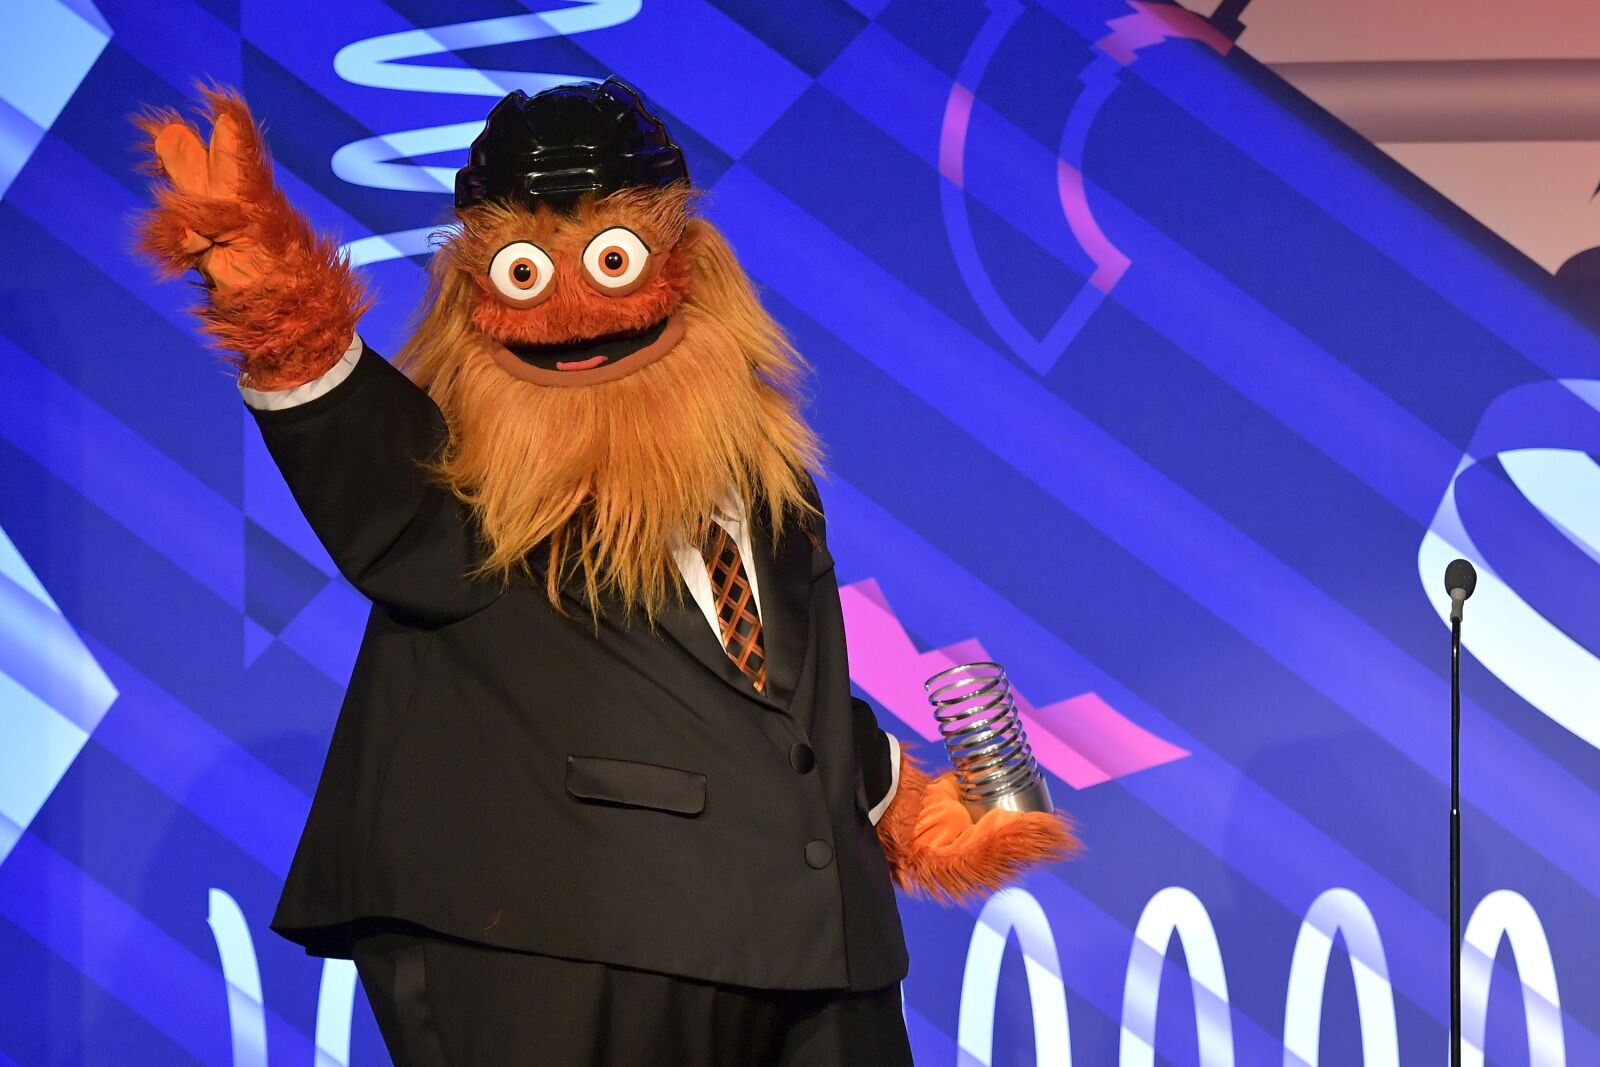 Philadelphia Flyers: Need A Summer Playlist? Gritty's Got You Covered